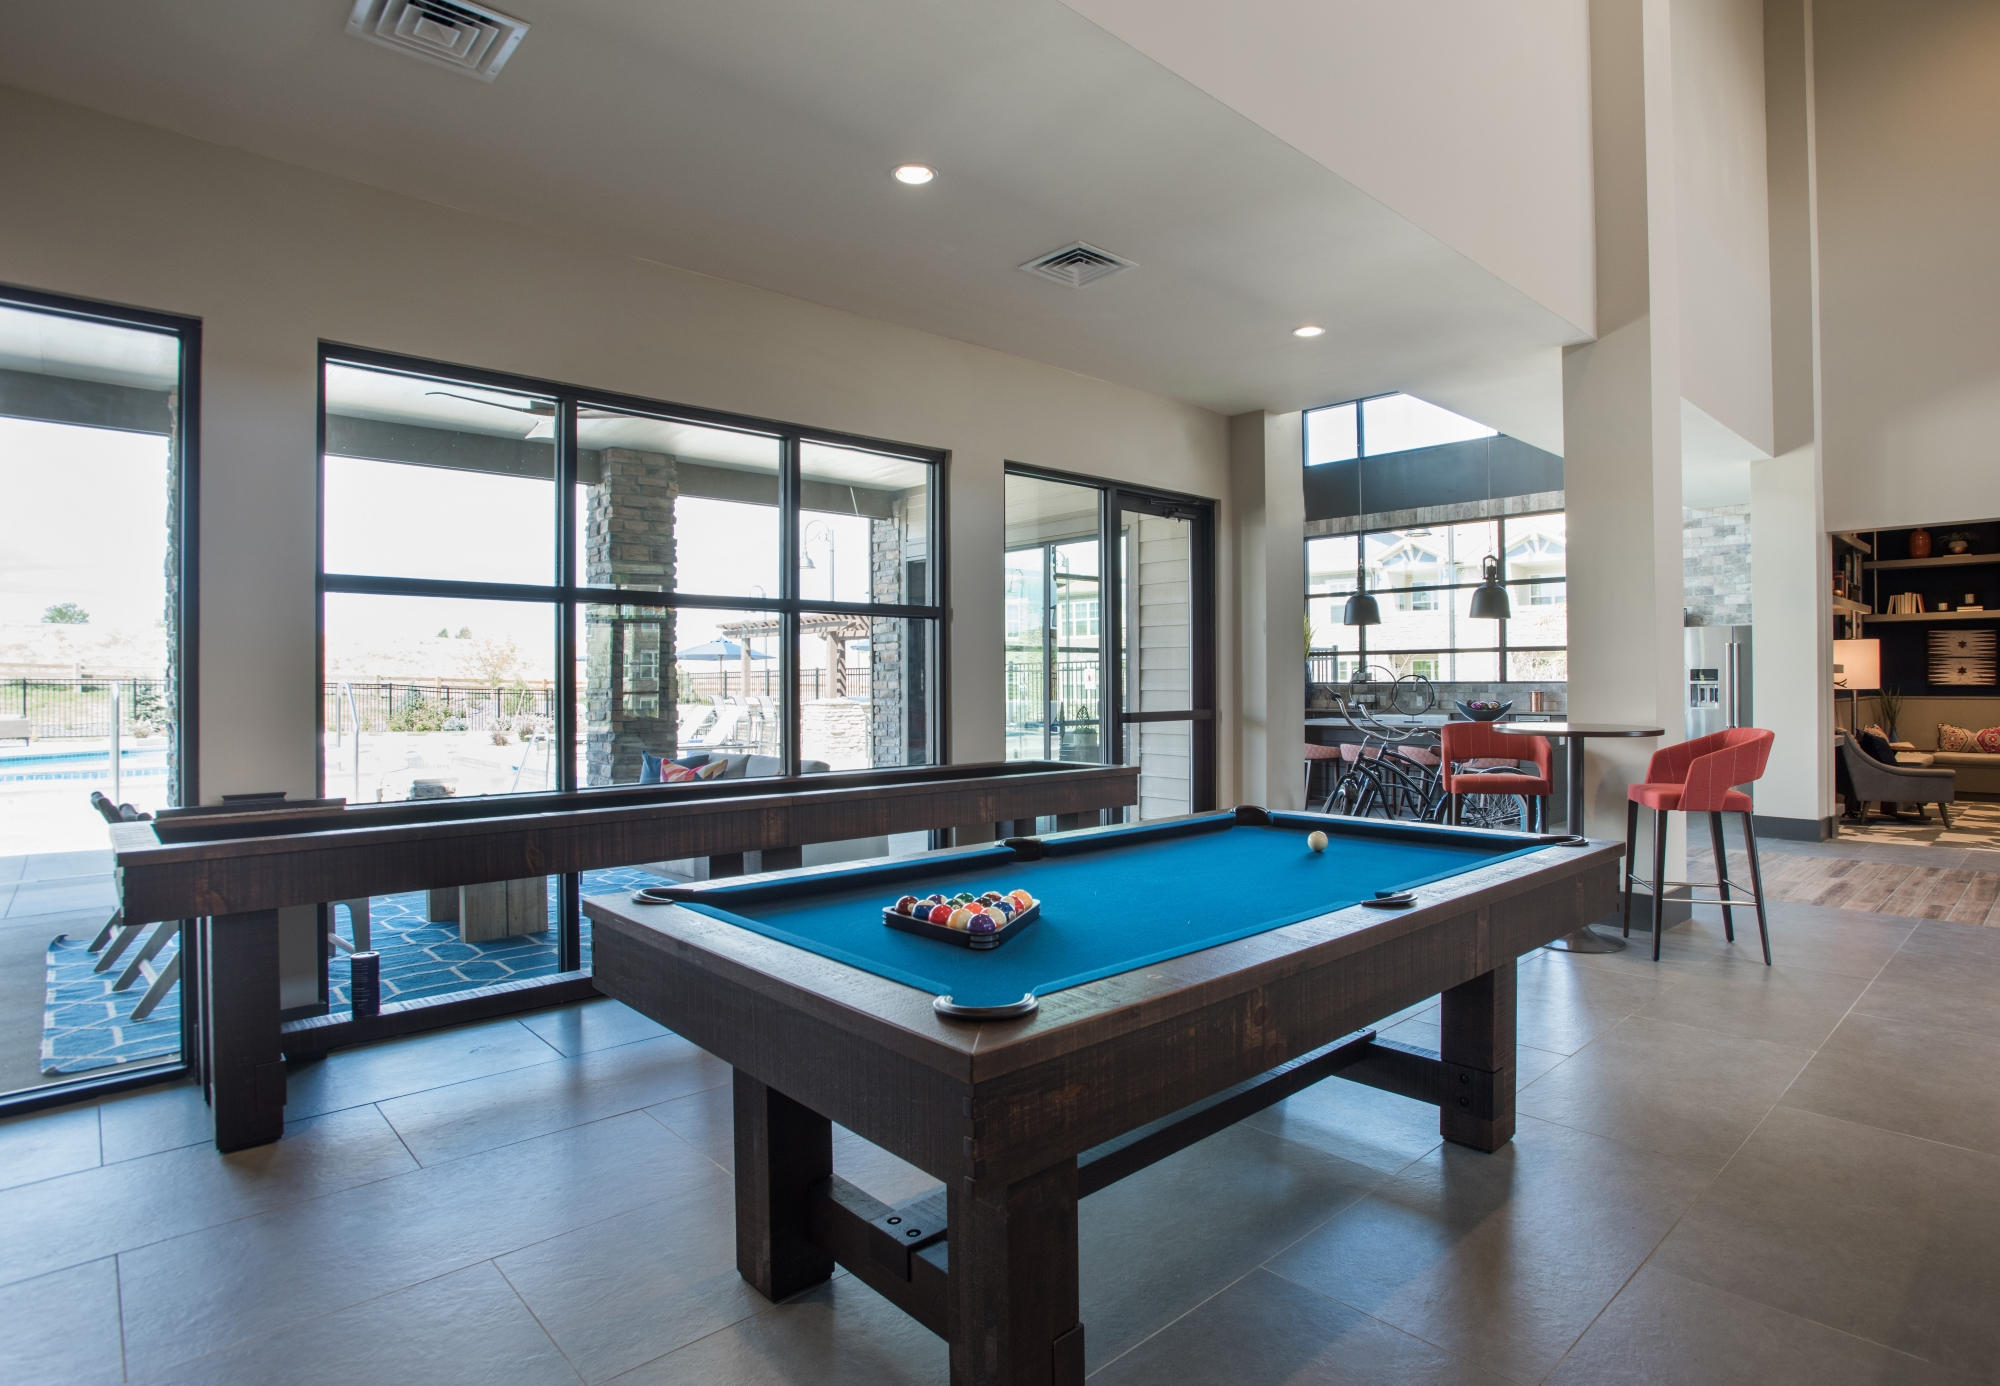 Community Pool Table, Shuffleboard, and Lounge